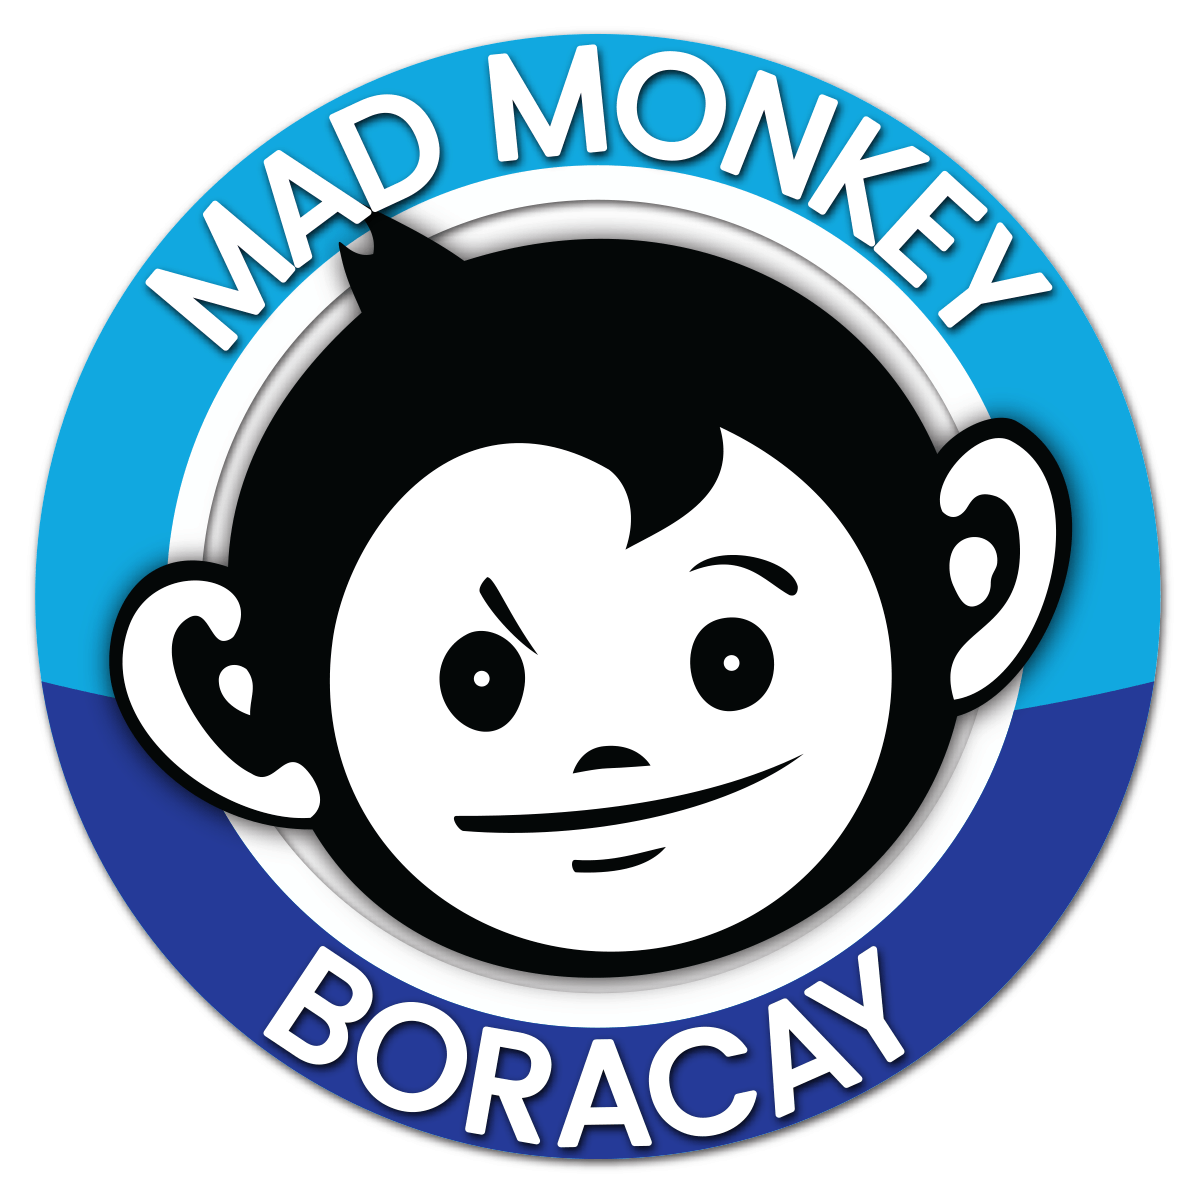 Mad Monkey Hostels Boracay, Philippines